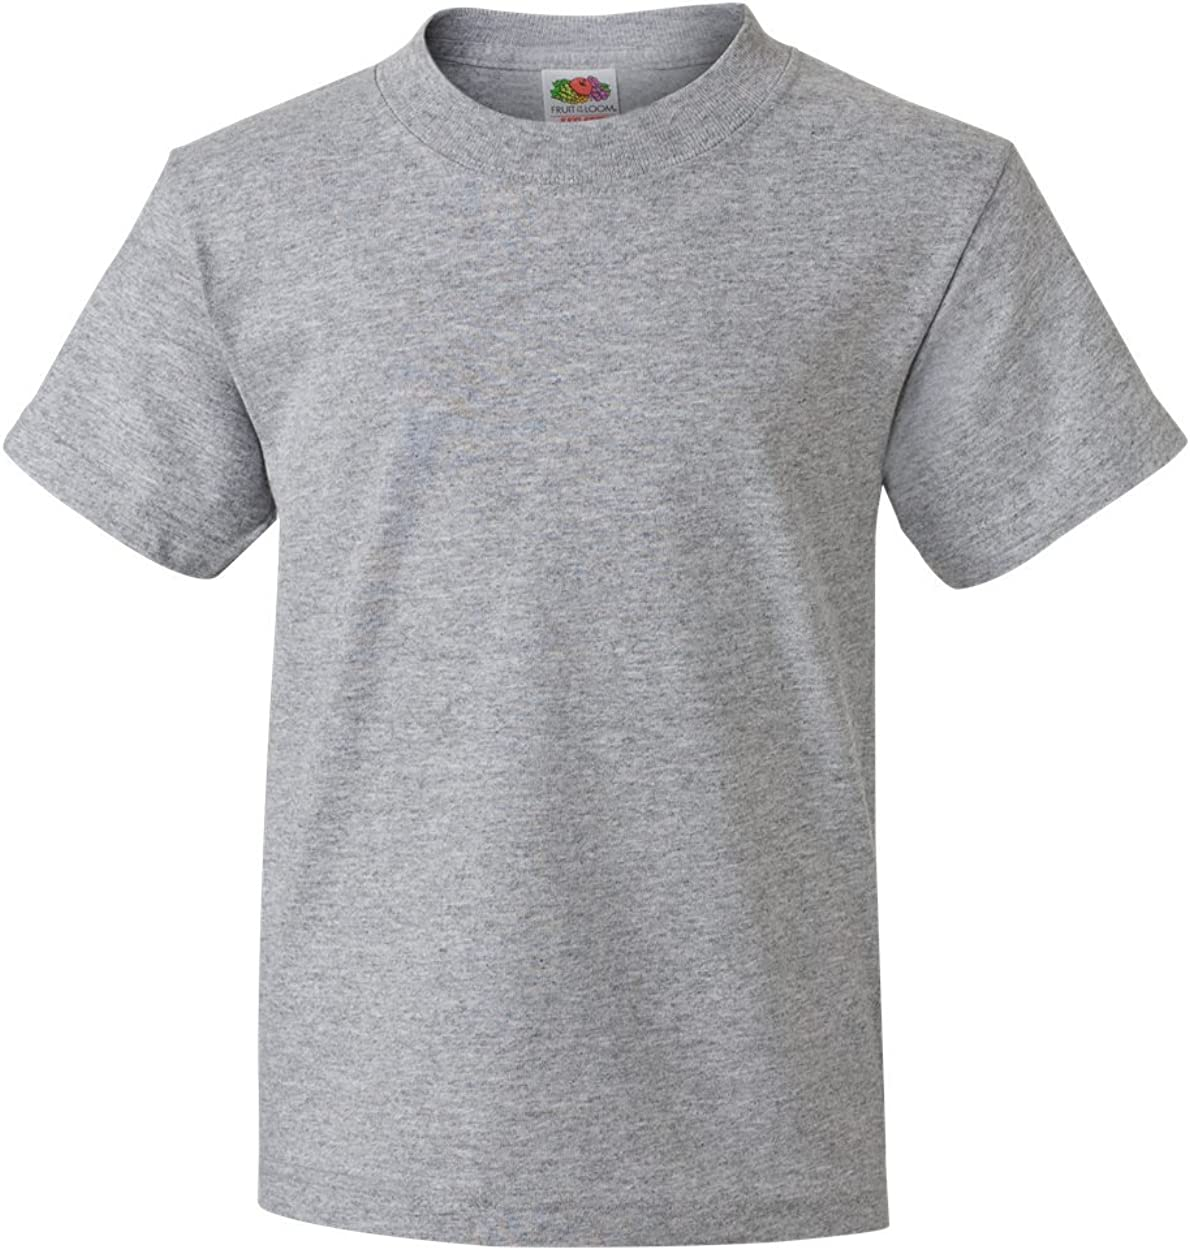 Fruit of the Loom - 5.6 oz Cotton Youth T-shirt, Athletic Heather Gry, M